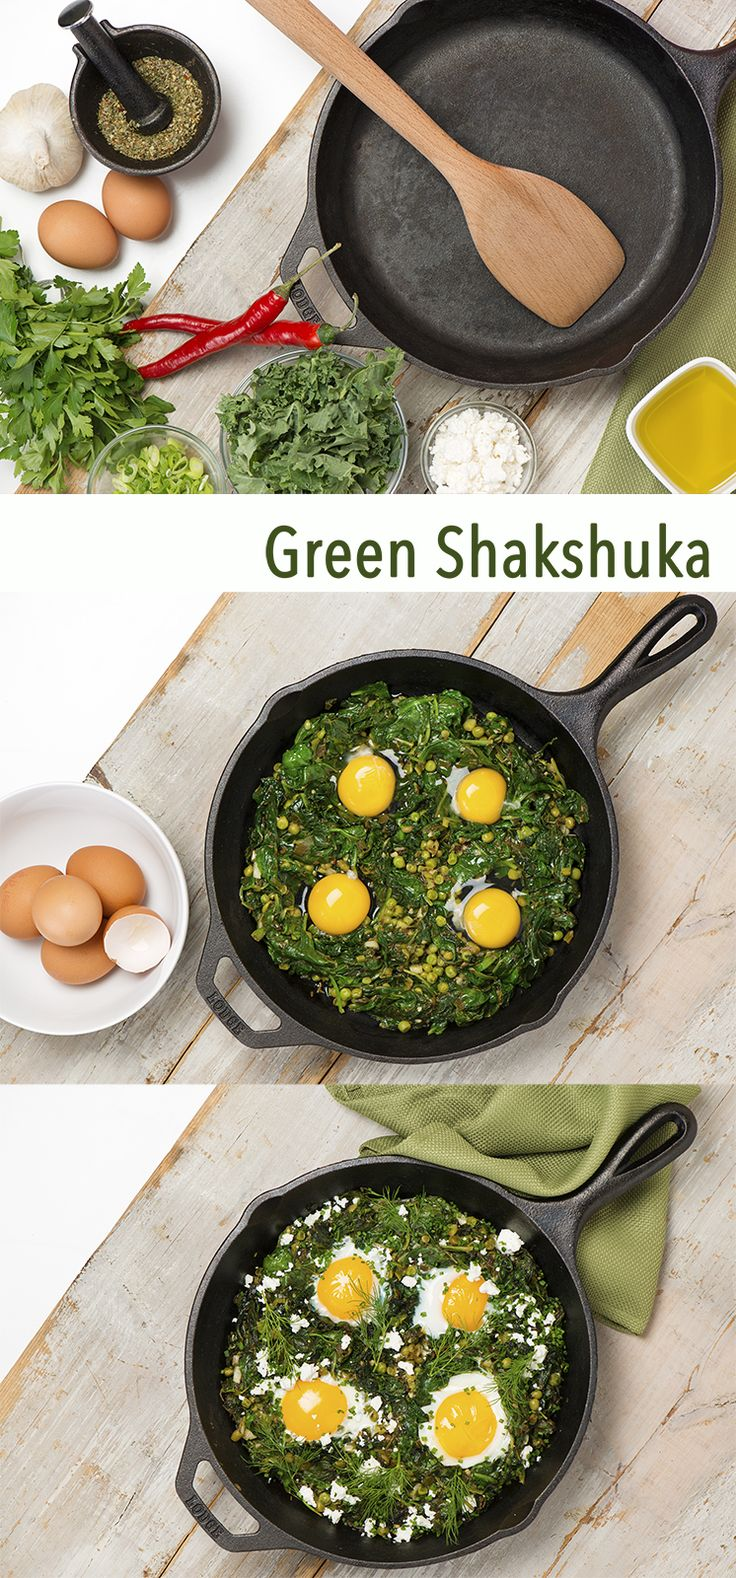 You don't need the luck of the Irish to try this delicious and easy-to-make green Shakshuka!